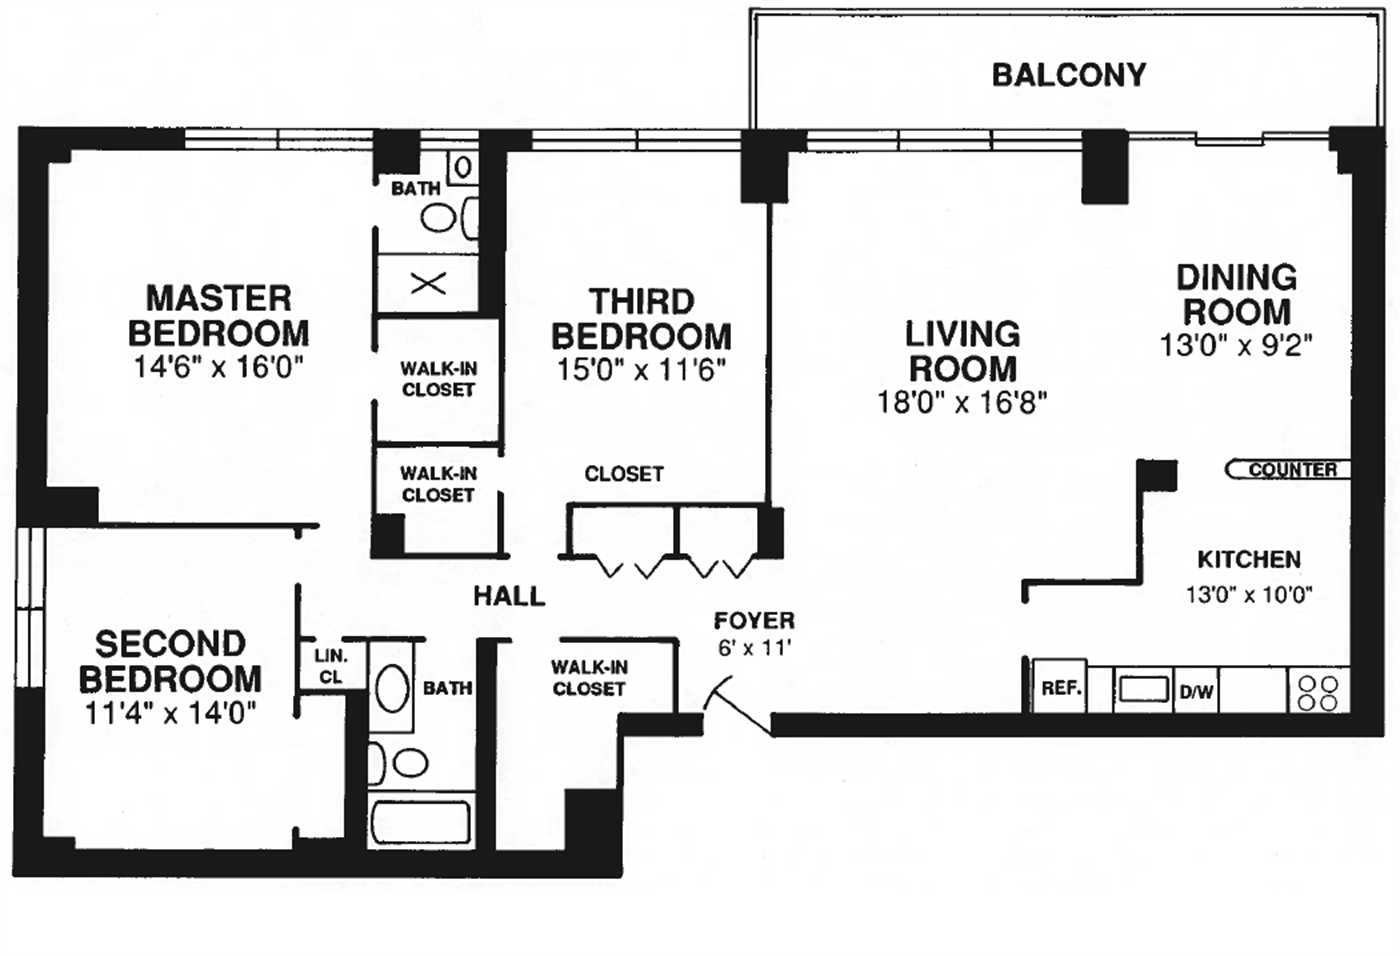 20 unique free floor plan templates house plans 6351 Design house plans online free